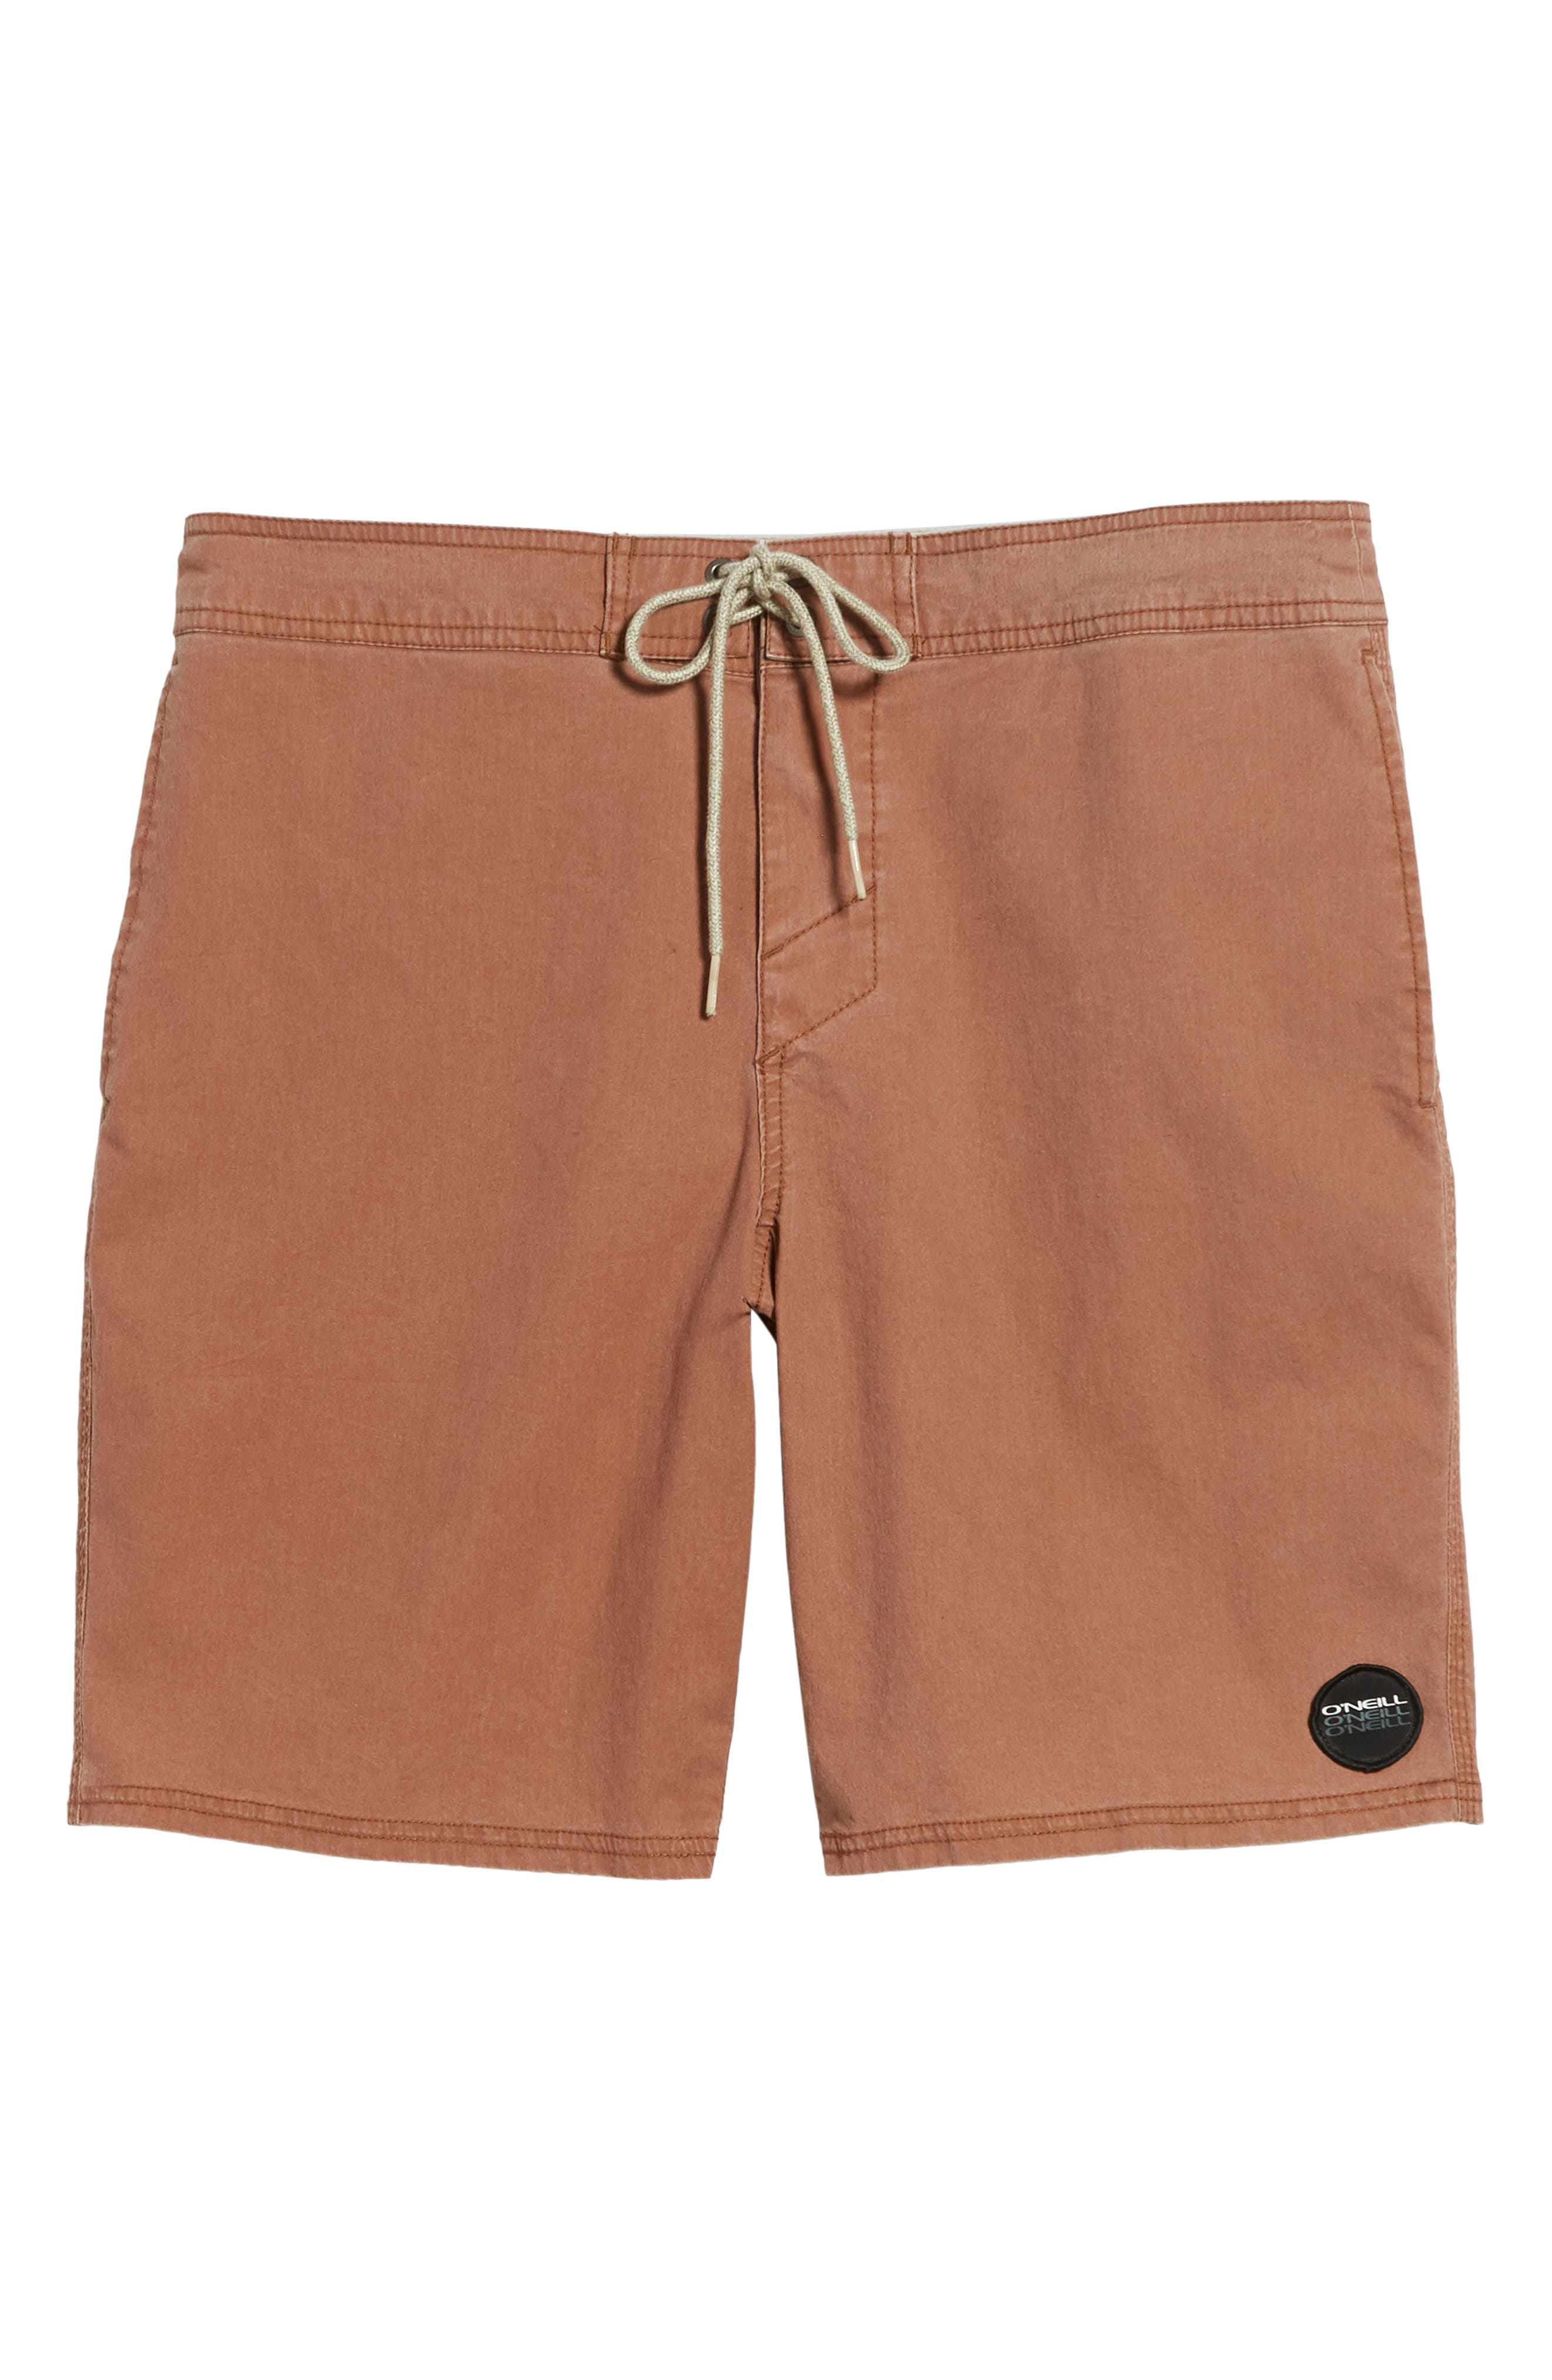 Faded Cruzer Board Shorts,                             Alternate thumbnail 6, color,                             218